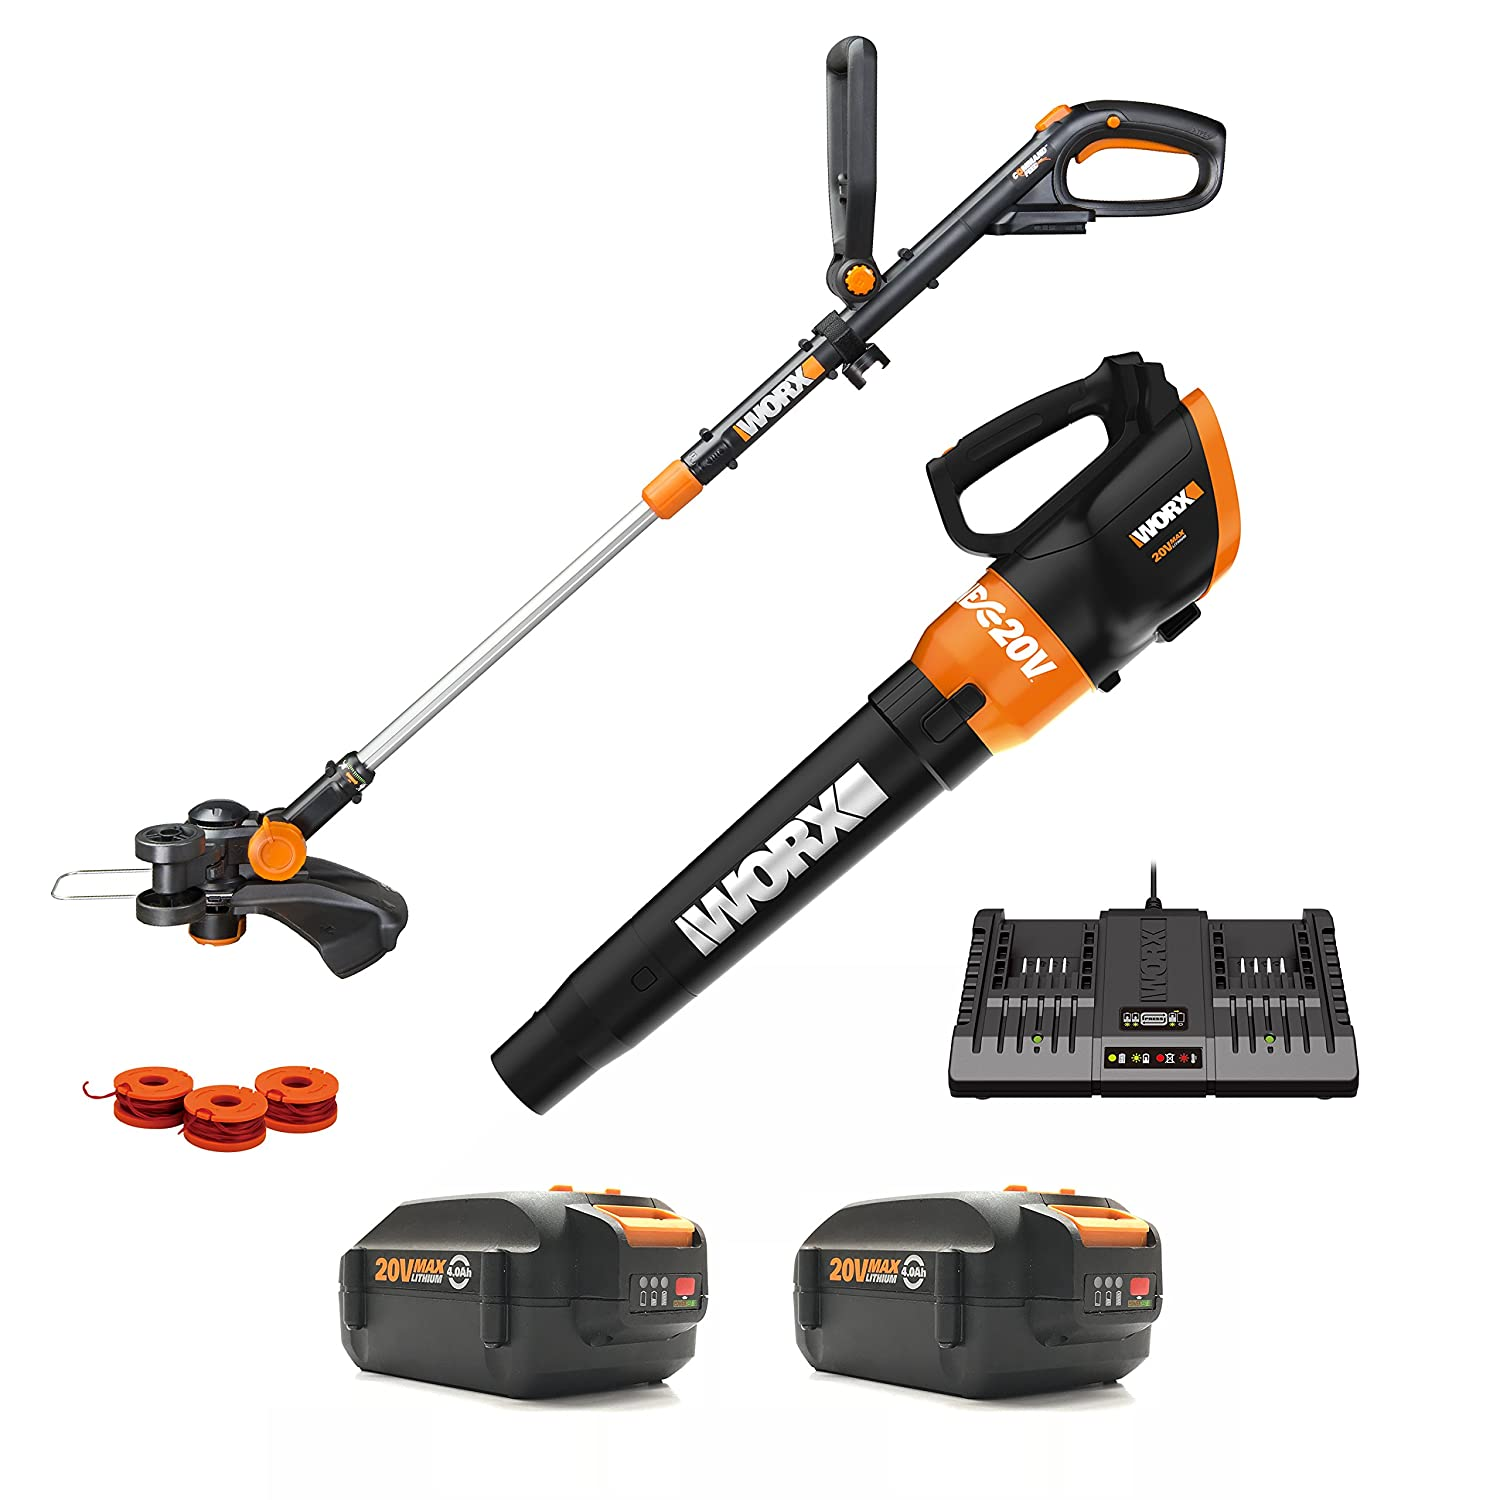 Worx WG954.1 20V Revolution Grass Trimmer Edger and Turbine Blower Combo Kit with two 20V 4.0Ah Batteries, Charger